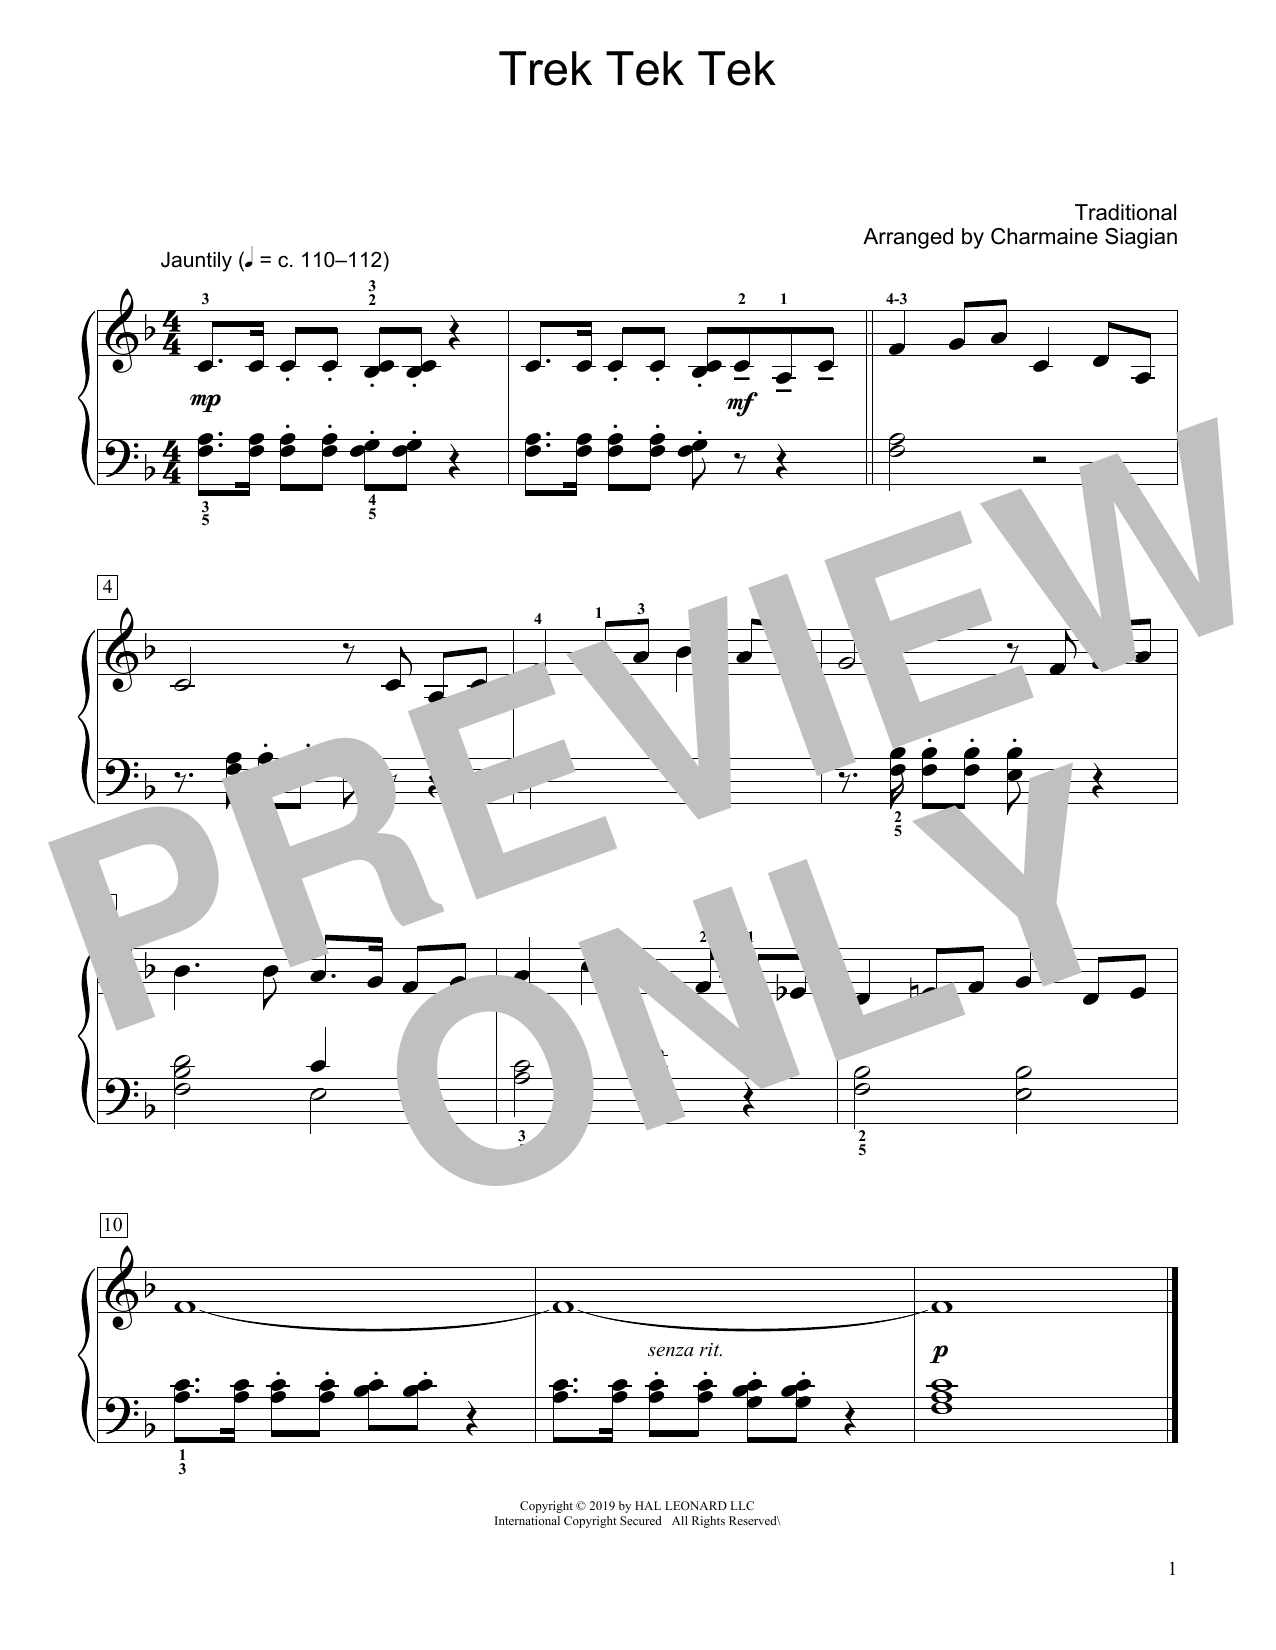 Traditional Trek Tek Tek (arr. Charmaine Siagian) sheet music notes and chords. Download Printable PDF.